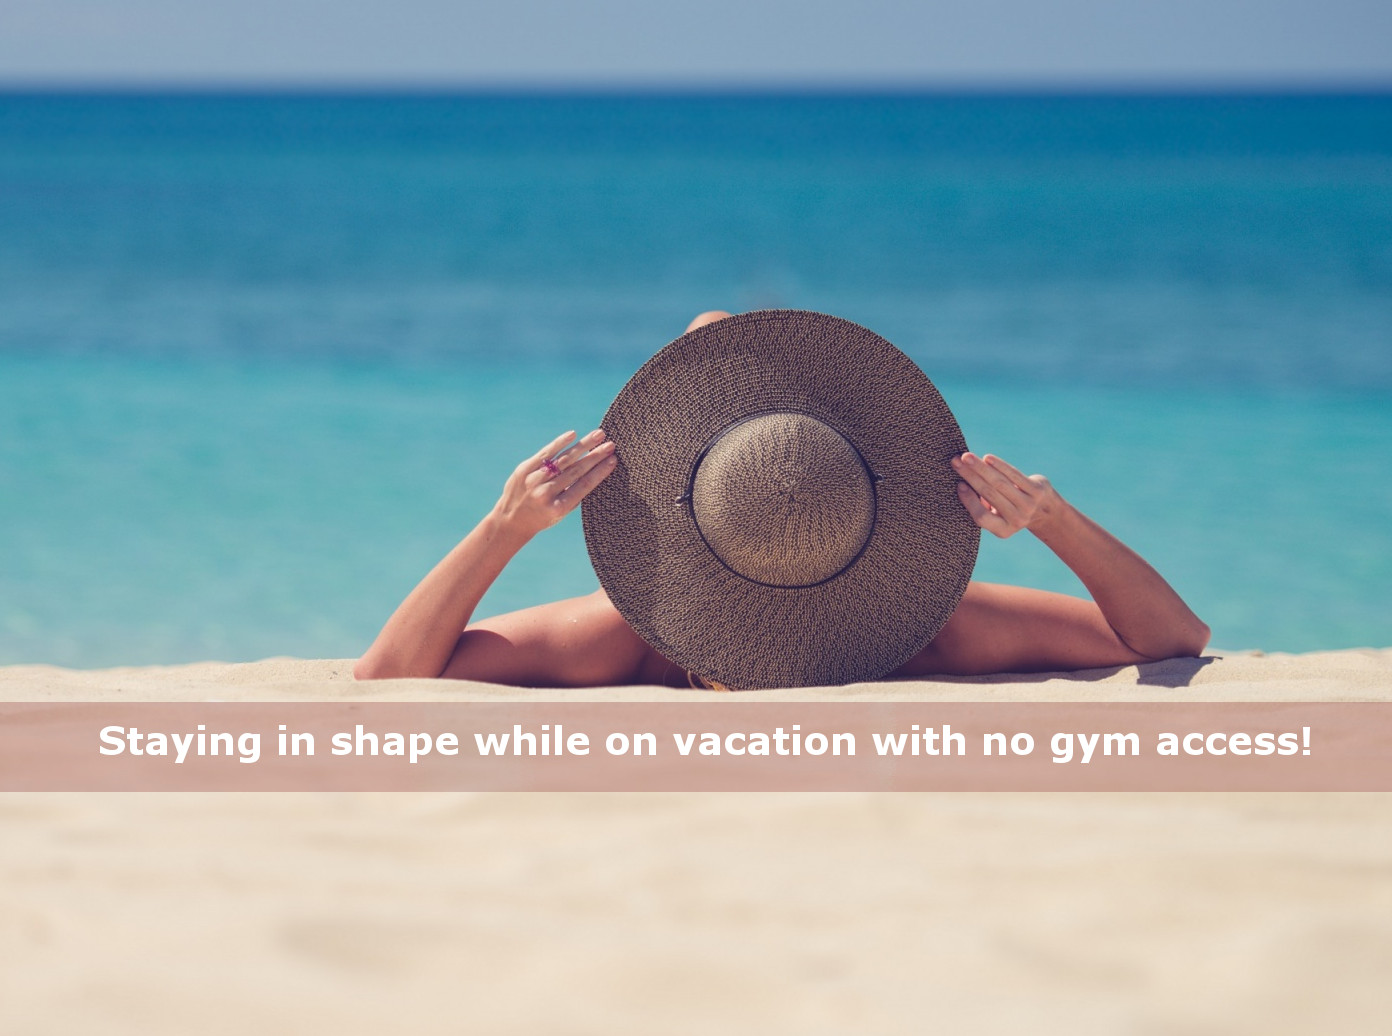 How to stay in shape while on vacation without gym access